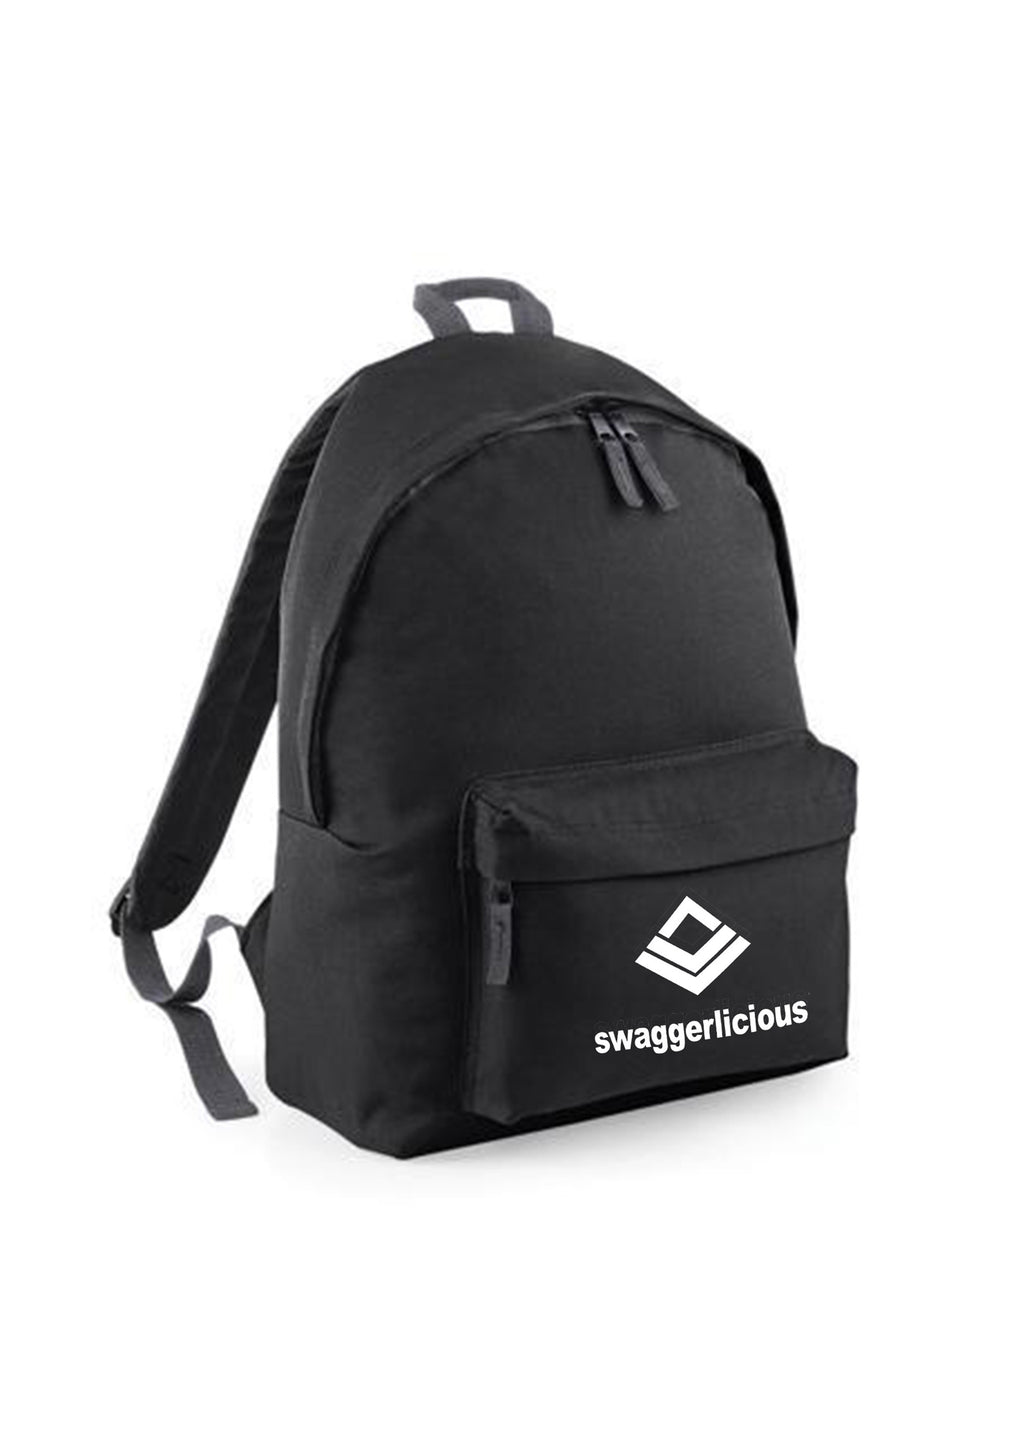 Swaggerlicious Black Backpack - swaggerlicious-clothing.com